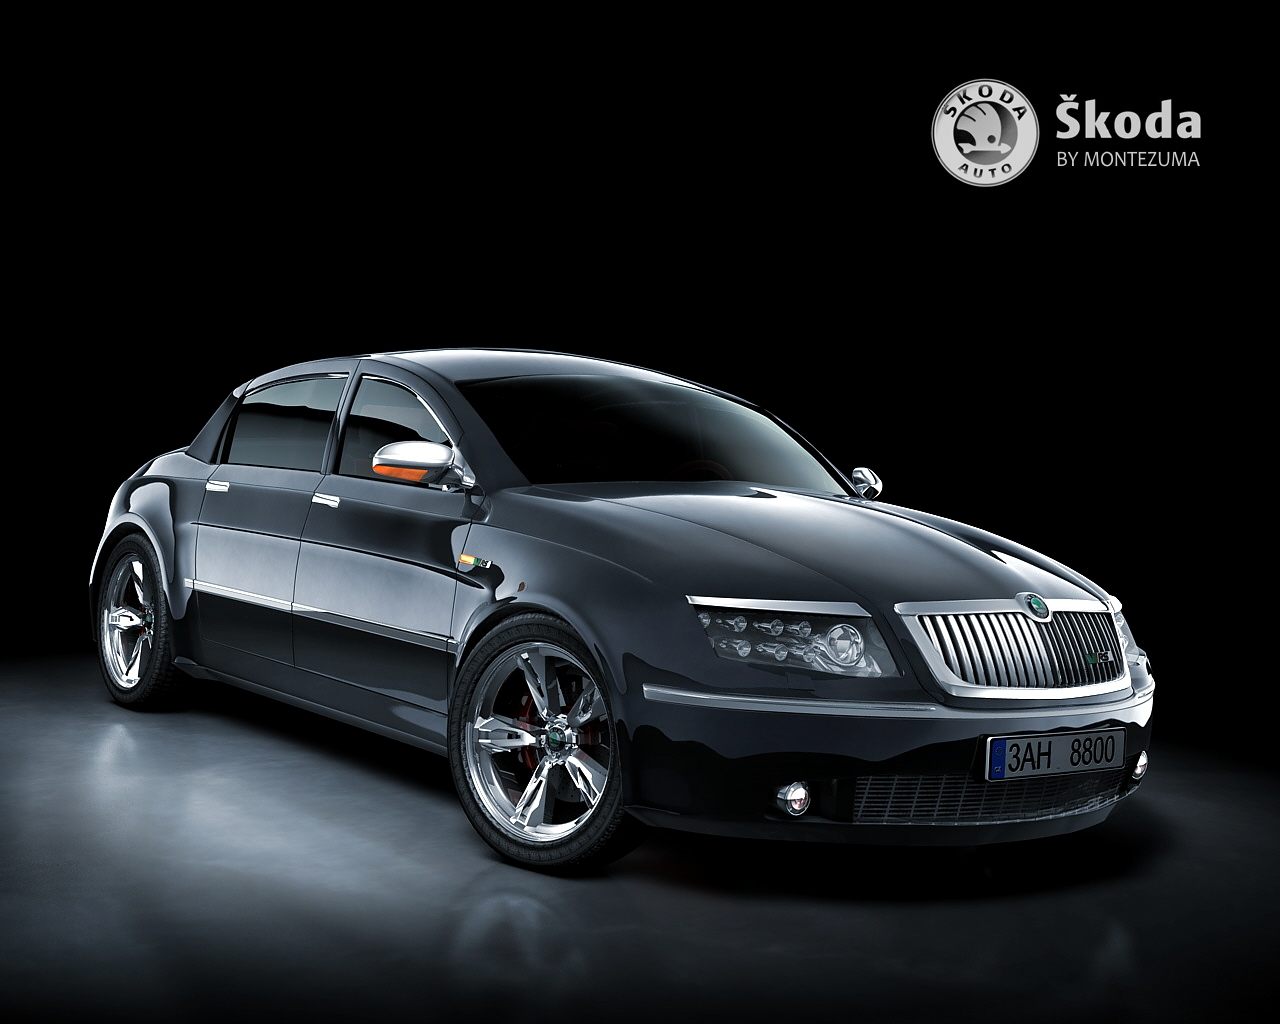 skoda auto 1 desktop wallpaper. Black Bedroom Furniture Sets. Home Design Ideas